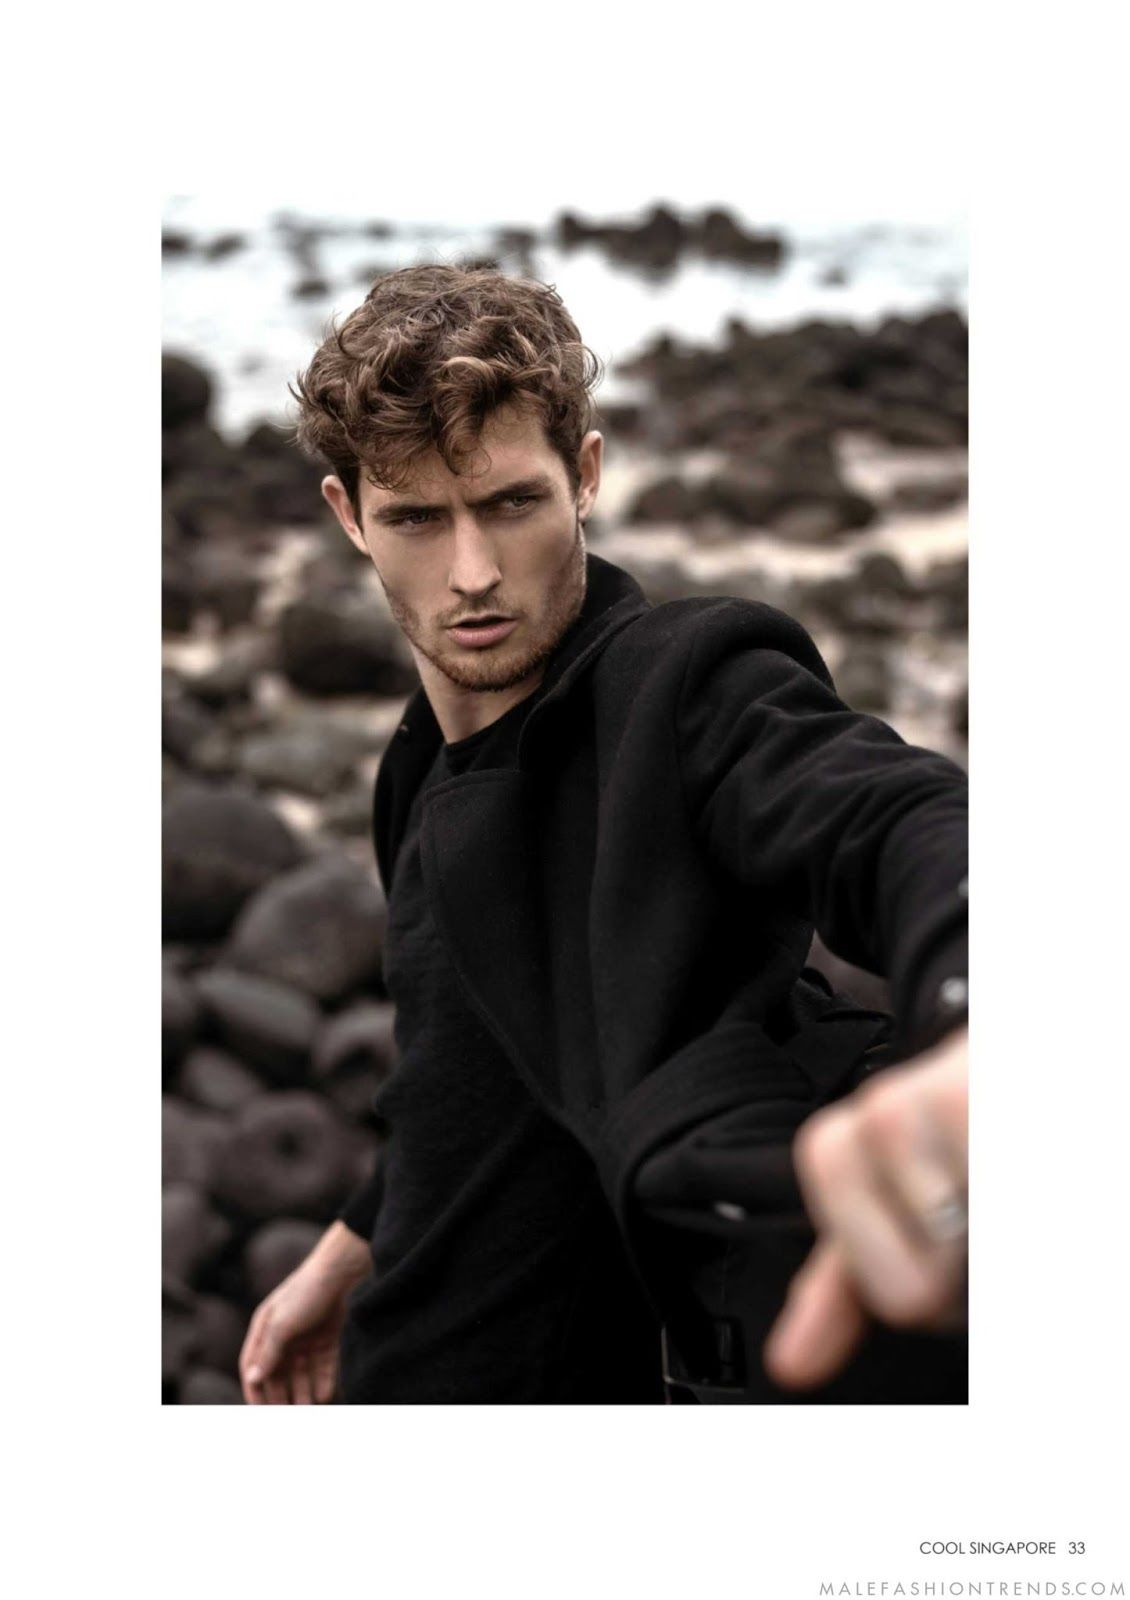 Looks Knight Cool Neutros En Para Magazine Posa Singapore Josh Lee qUw75I